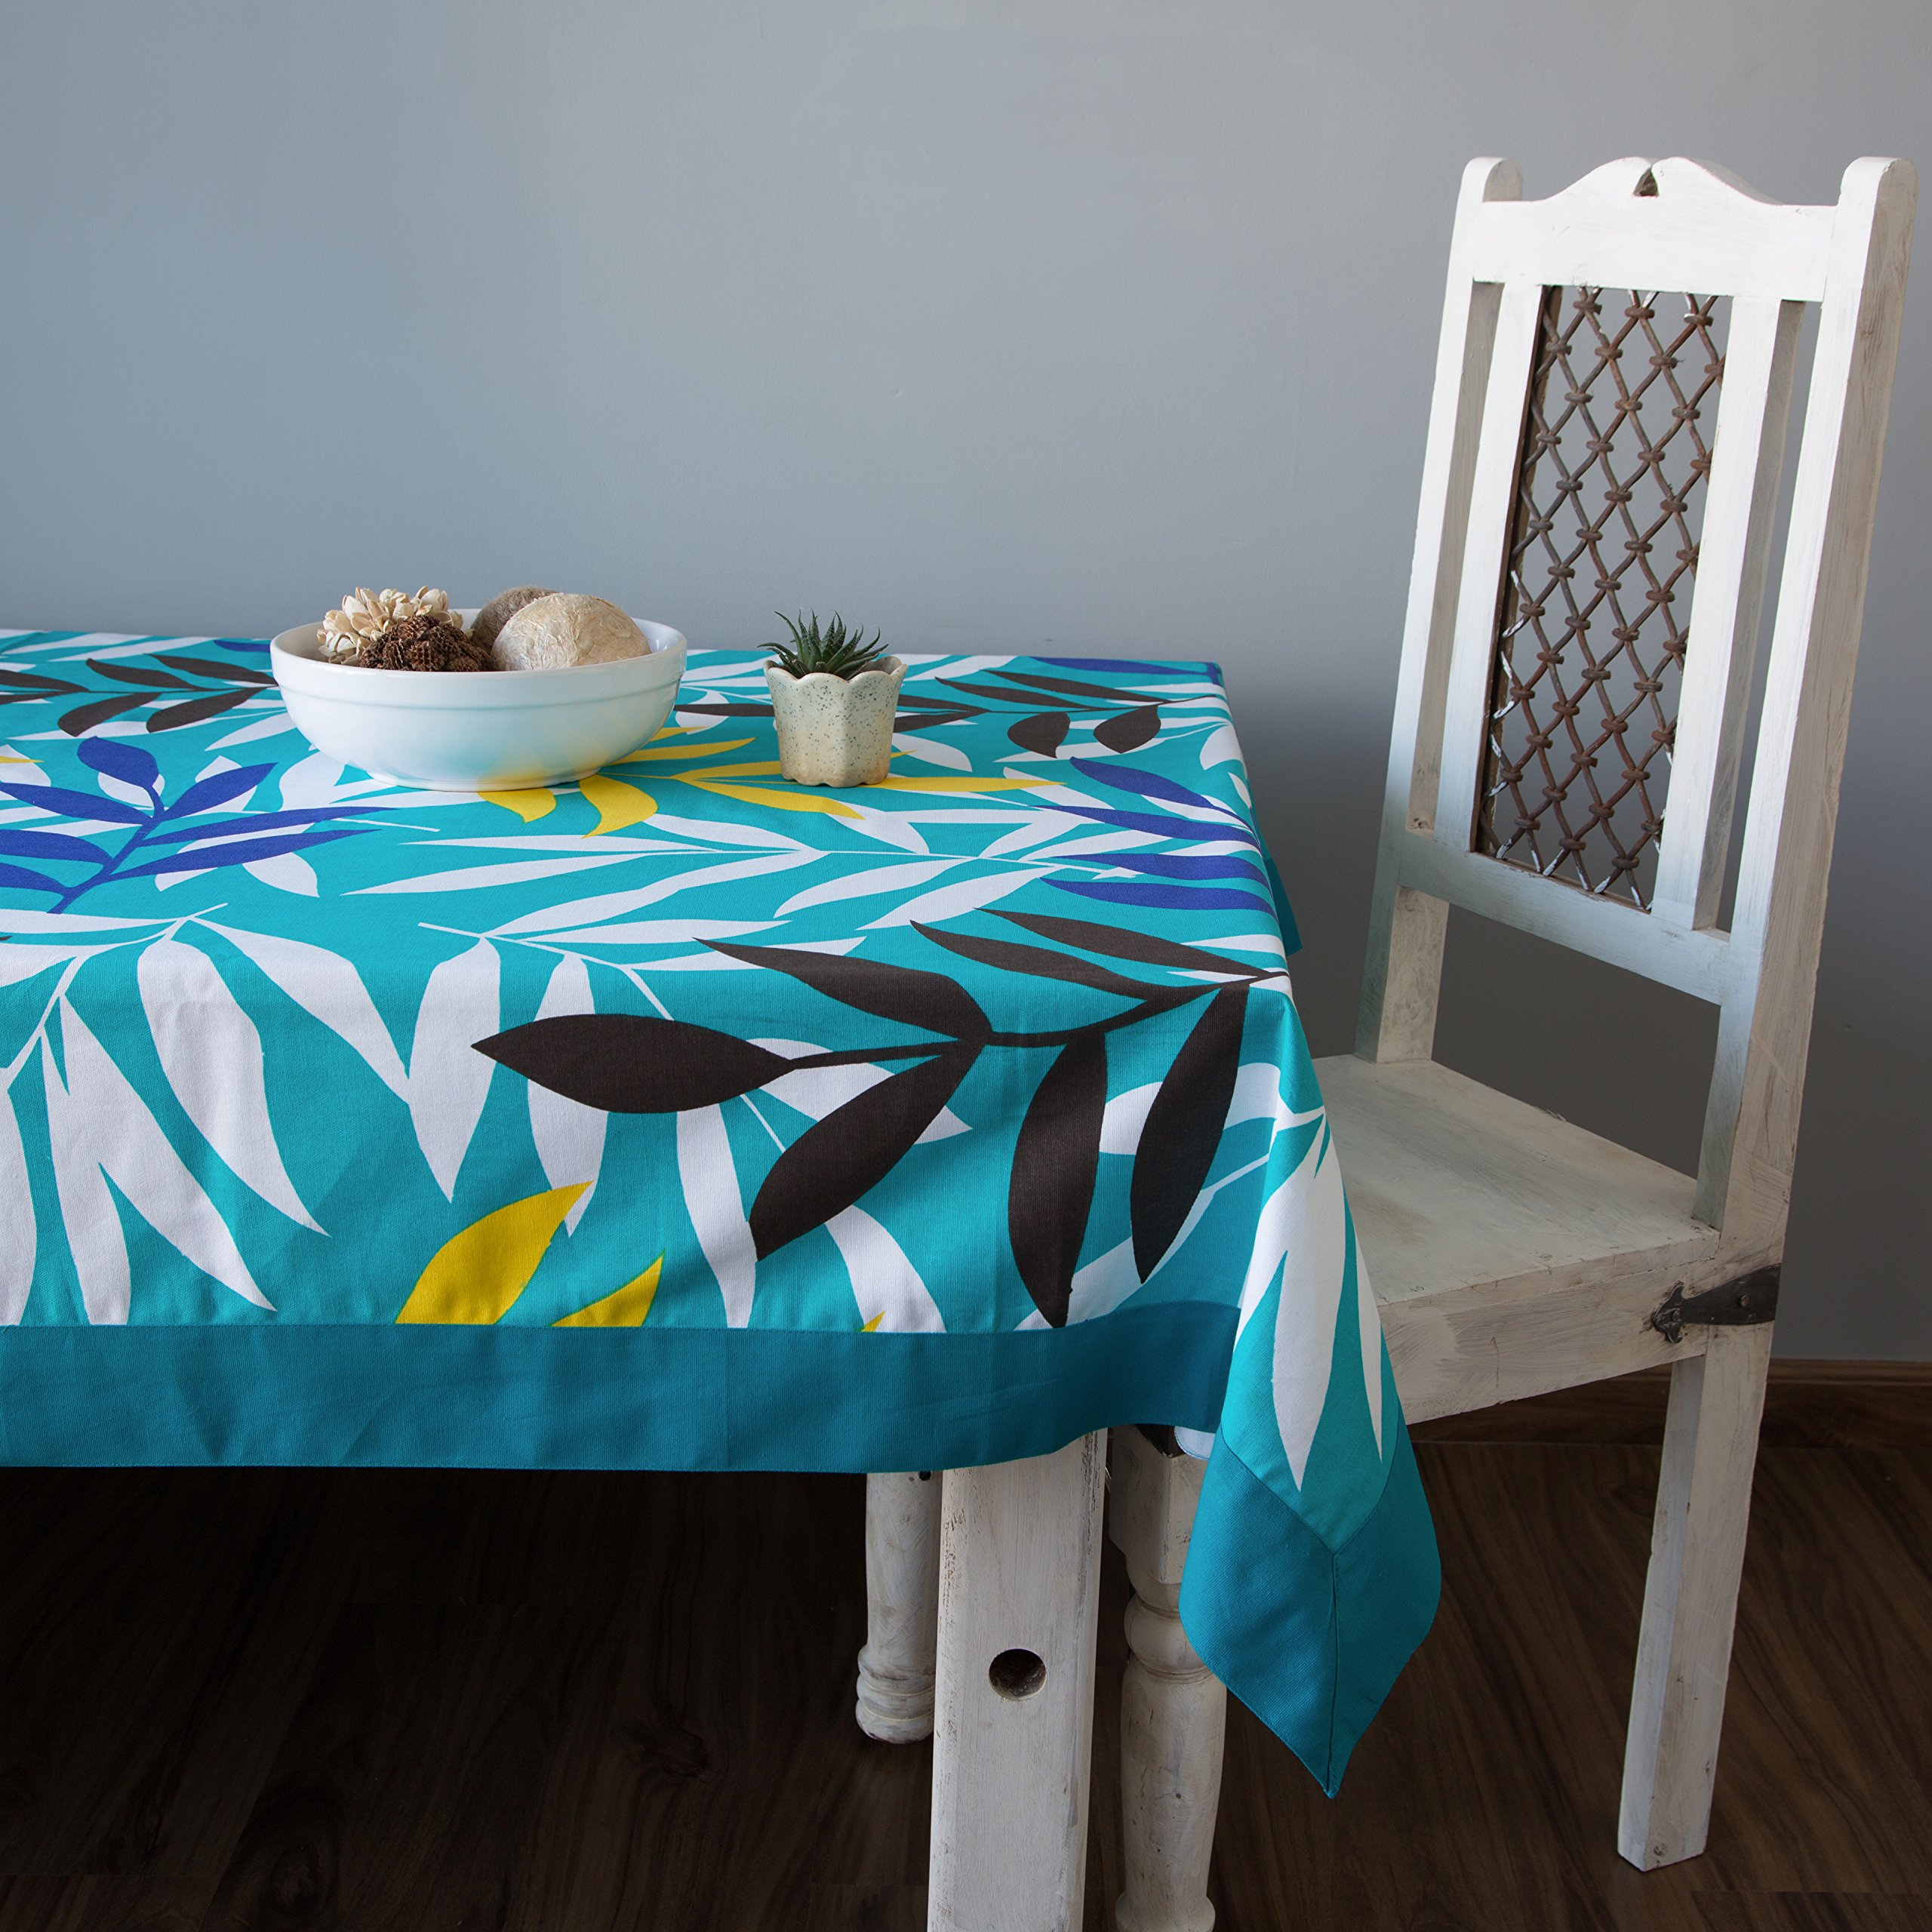 ShalinIndia Colorful Cotton Spring Floral Rectangular Tablecloths For Dinning Tables -144x60-Inches Turquoise Border